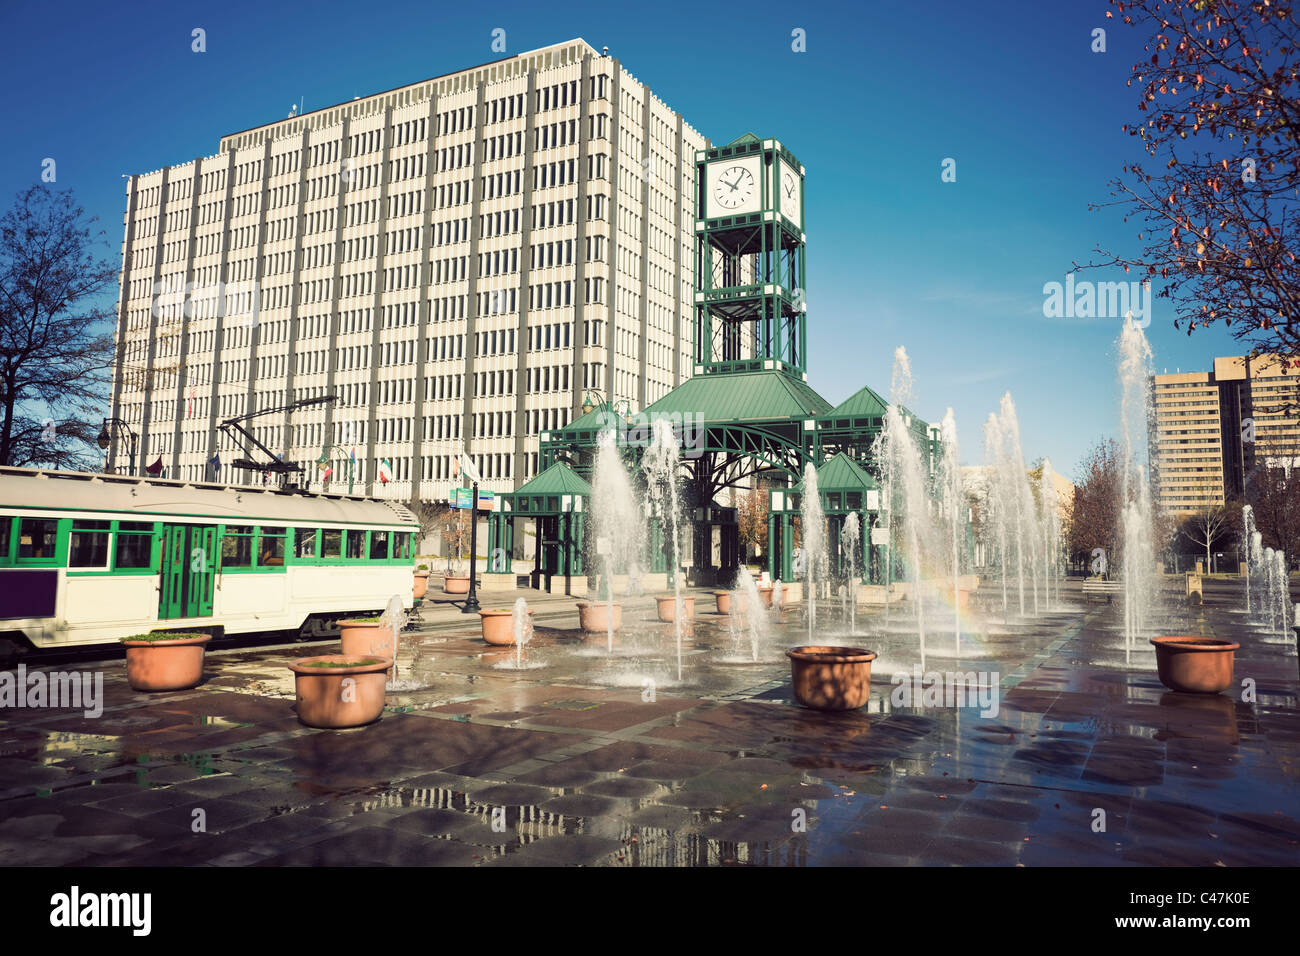 Tramway in Memphis, Tennessee - Stock Image